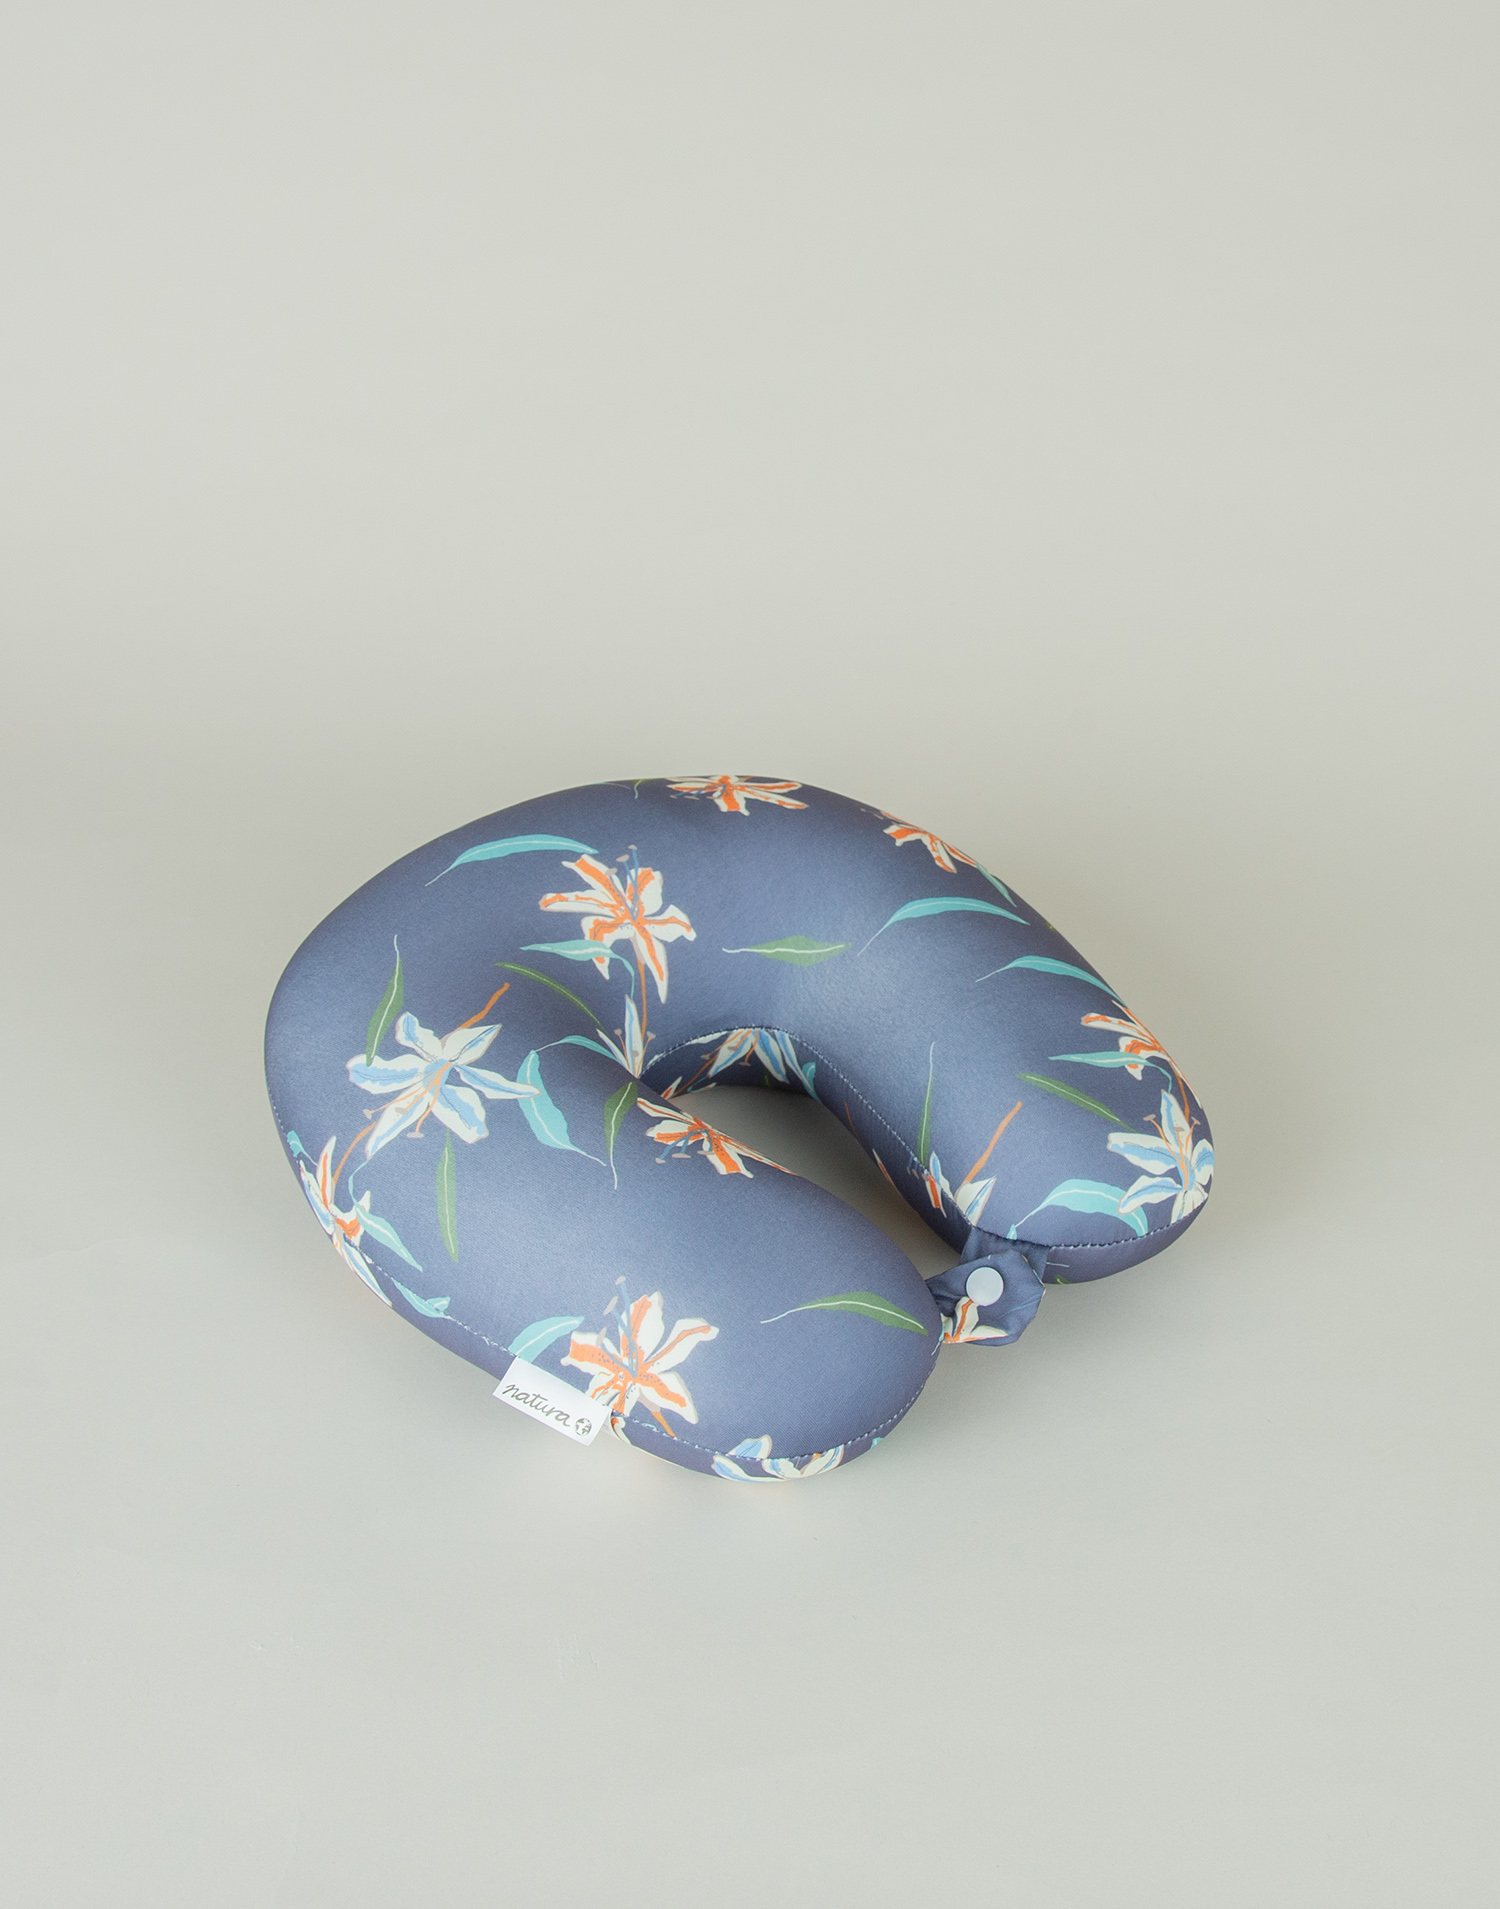 Travel pillow 2020